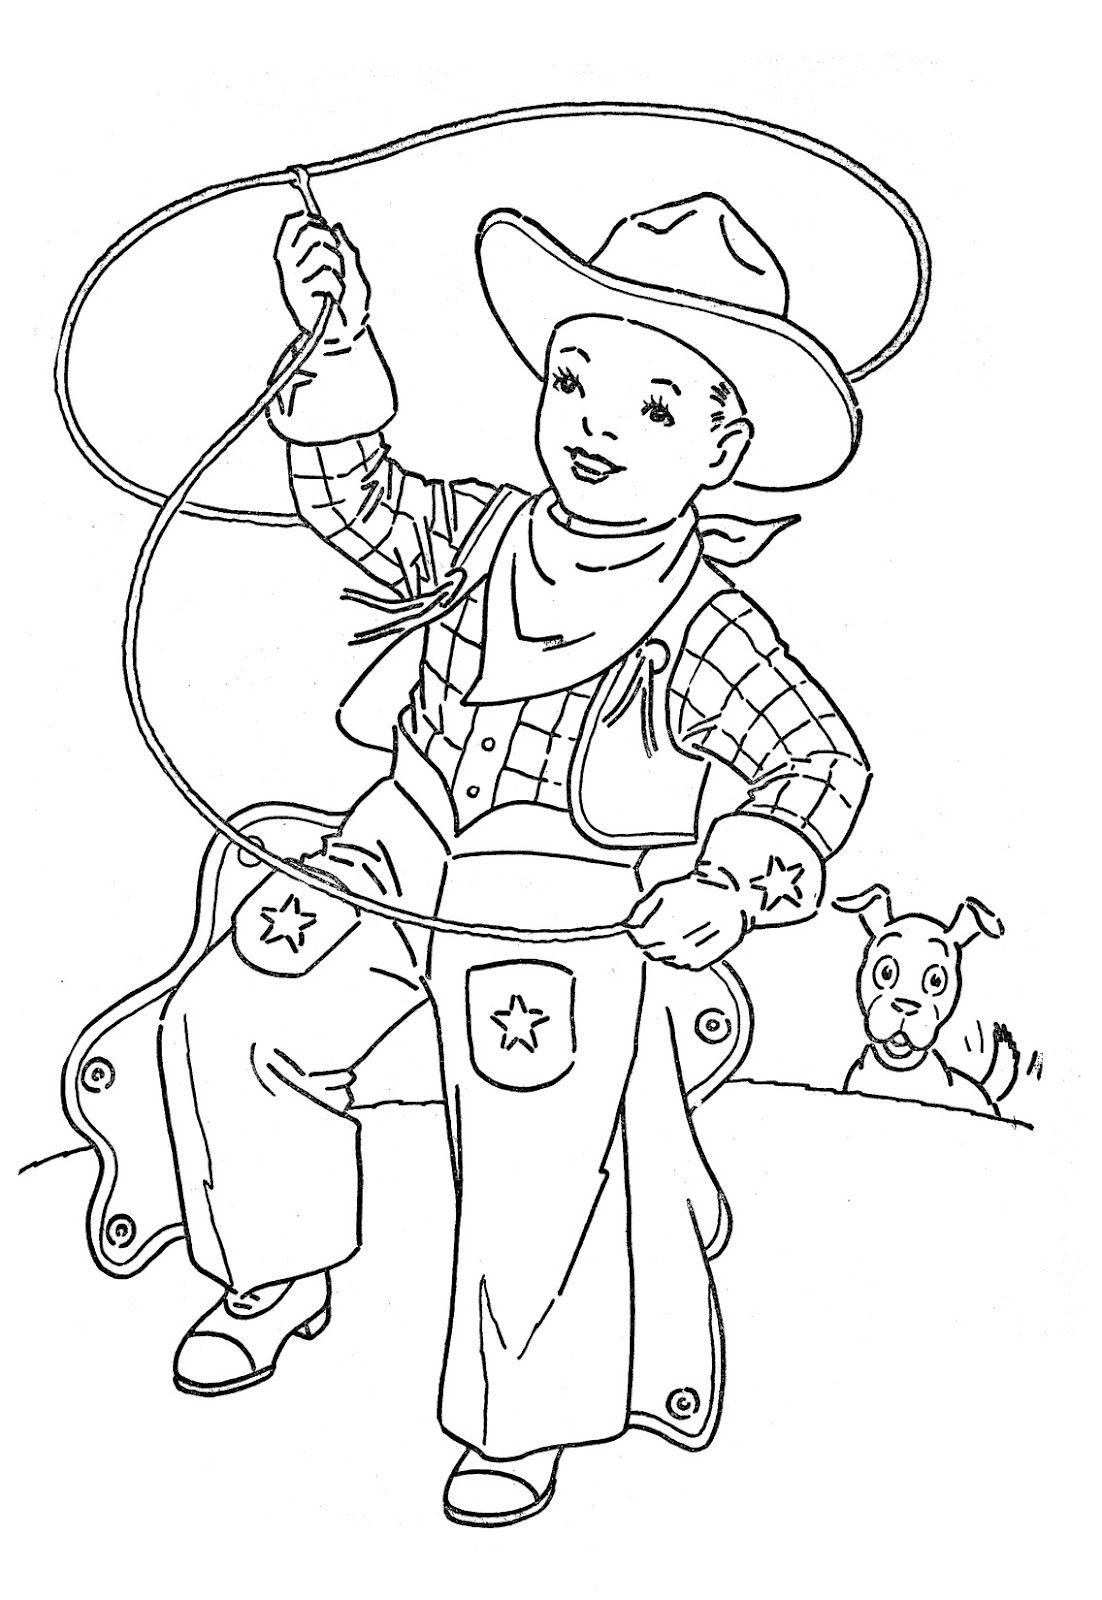 Coloring Pages Of A Cowboy